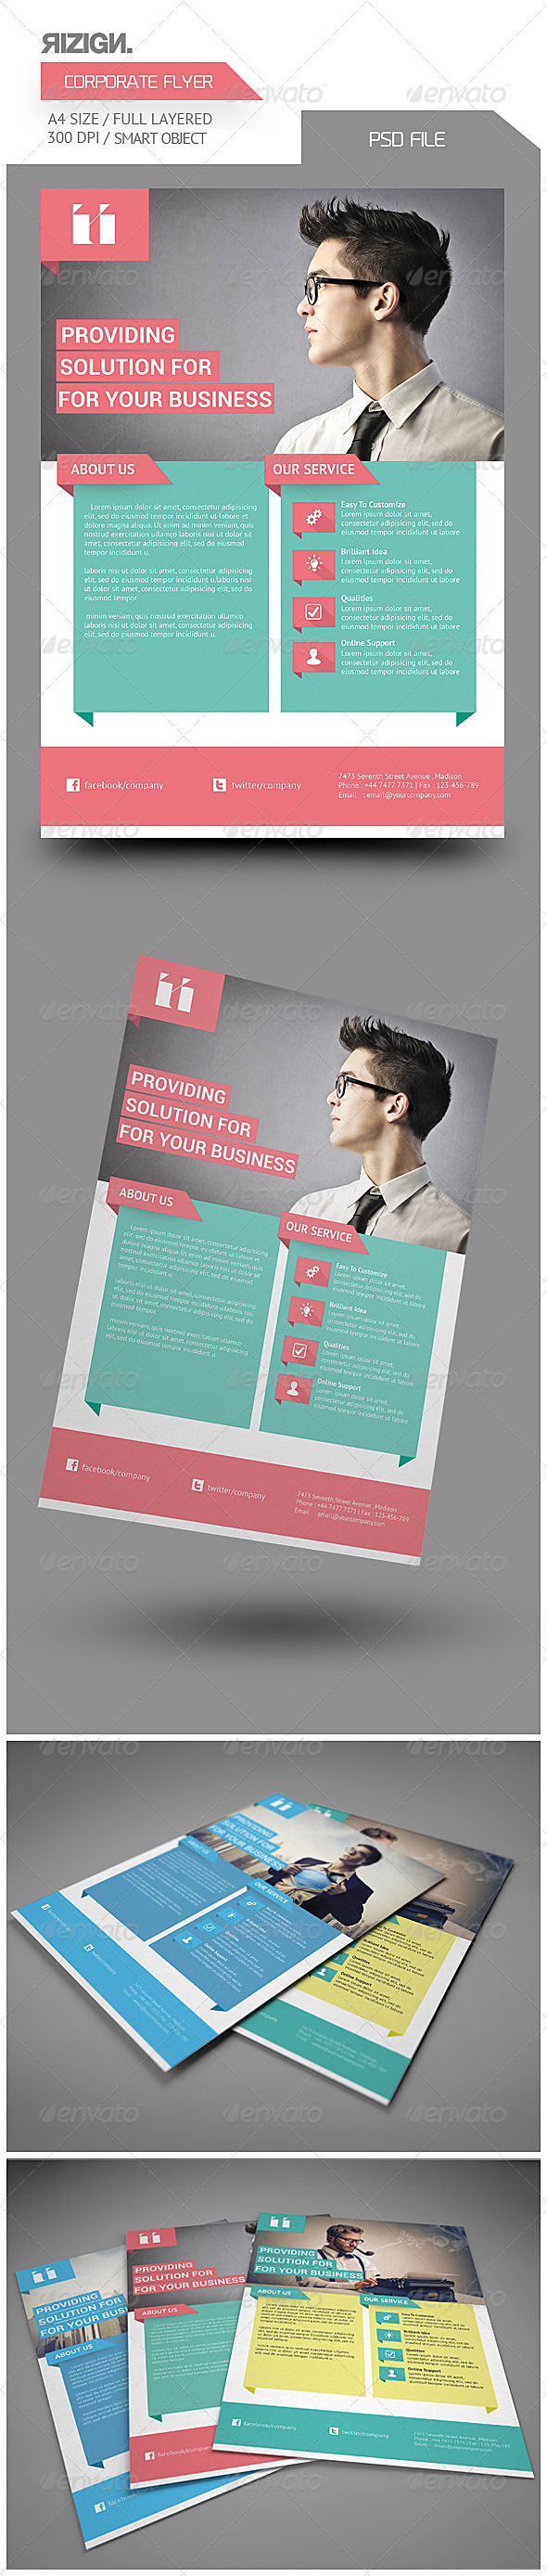 GraphicRiver Corporate Flyer 6541247